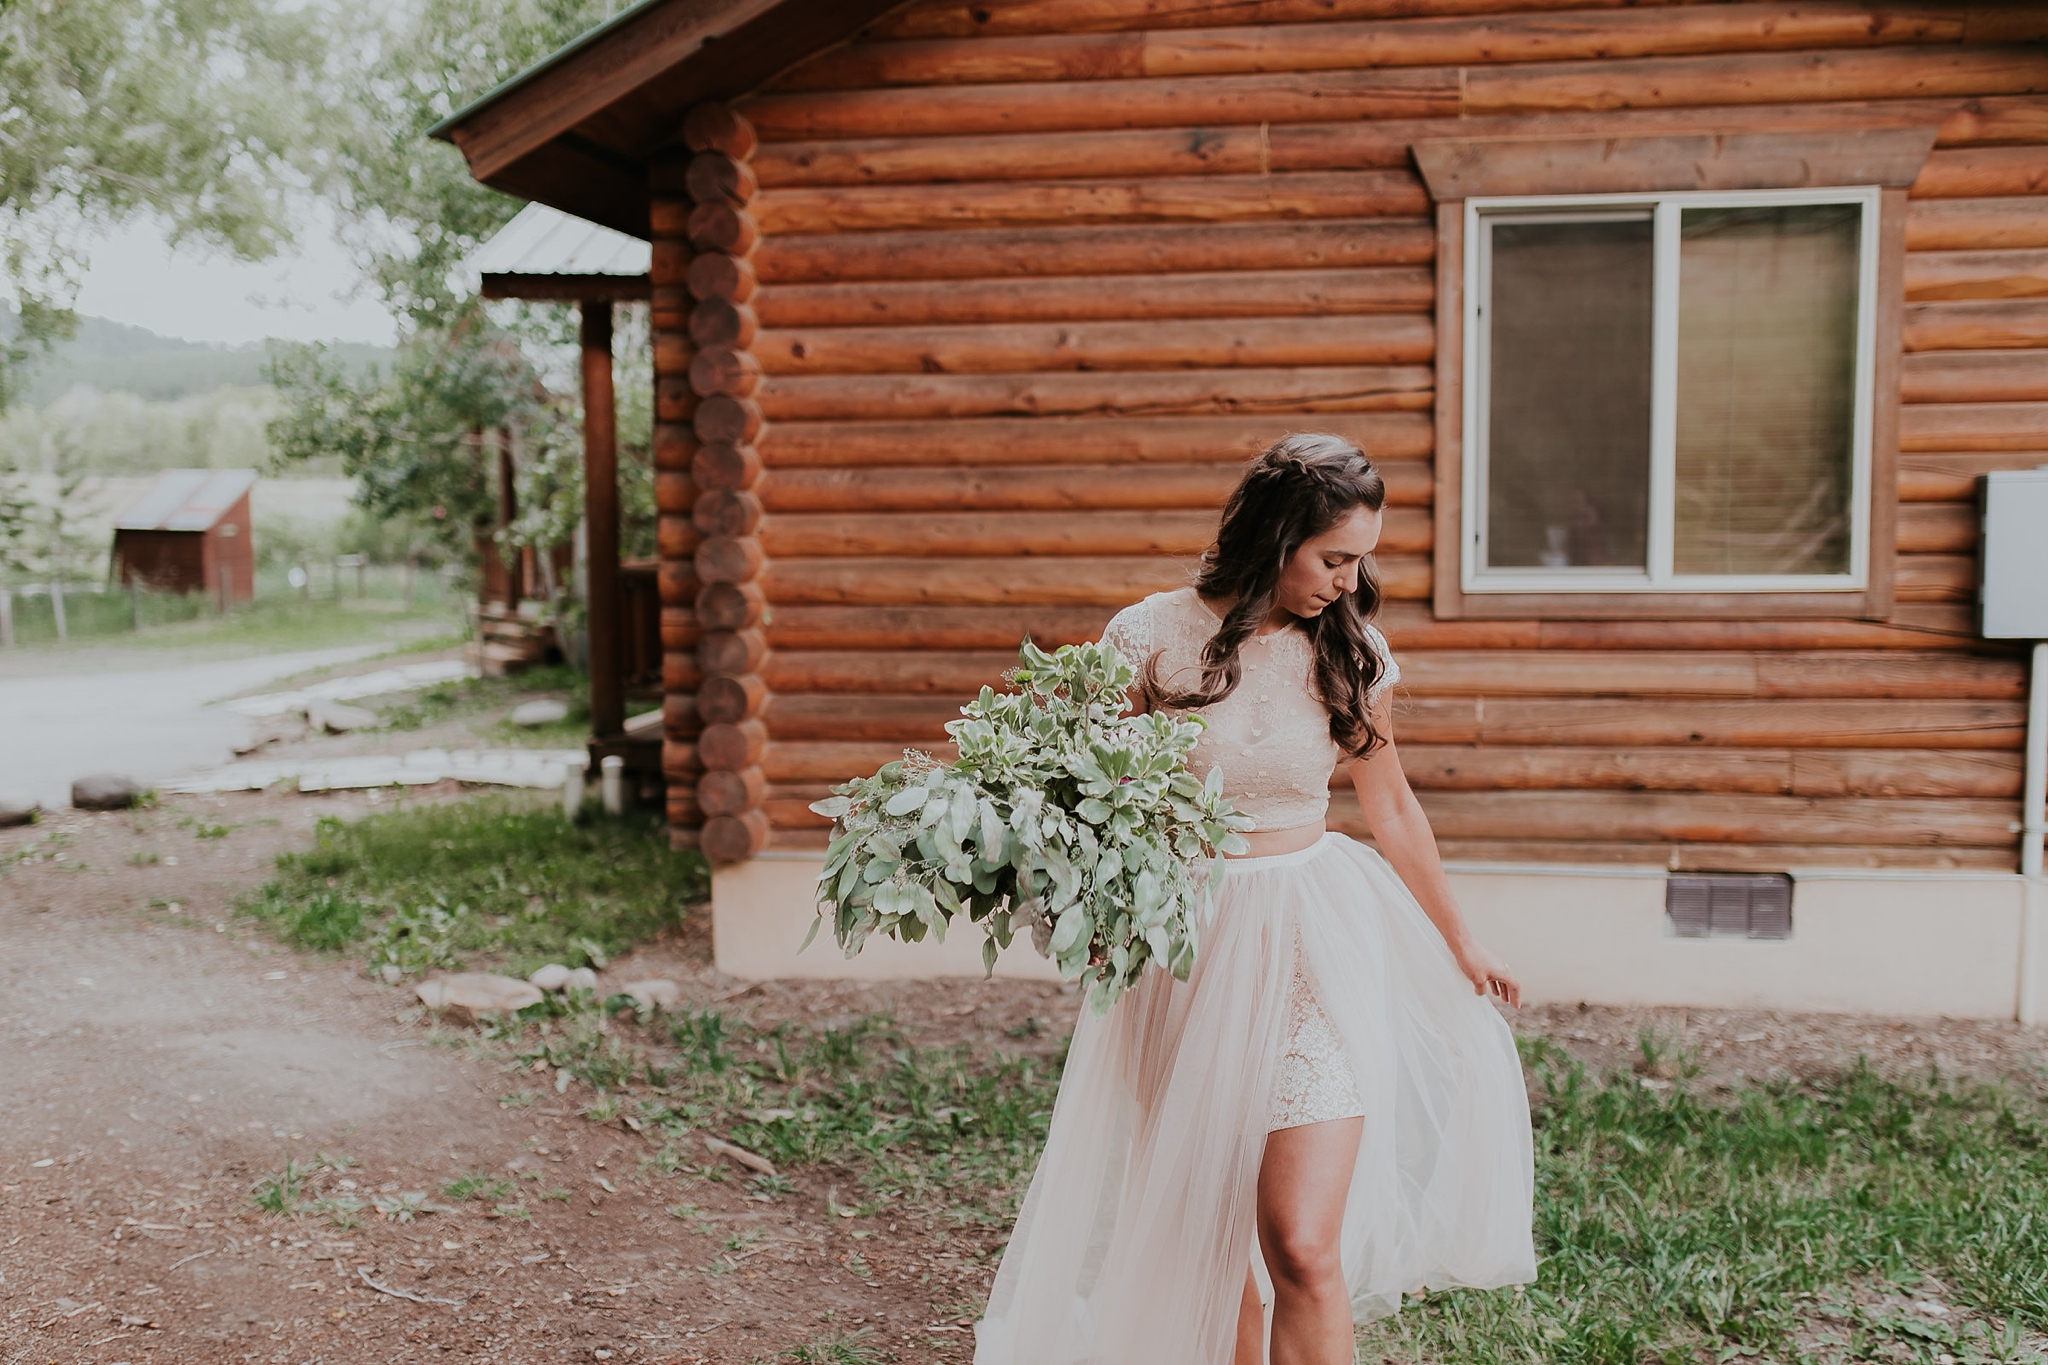 Alicia+lucia+photography+-+albuquerque+wedding+photographer+-+santa+fe+wedding+photography+-+new+mexico+wedding+photographer+-+albuquerque+wedding+-+santa+fe+wedding+-+wedding+gowns+-+non+traditional+wedding+gowns_0006.jpg